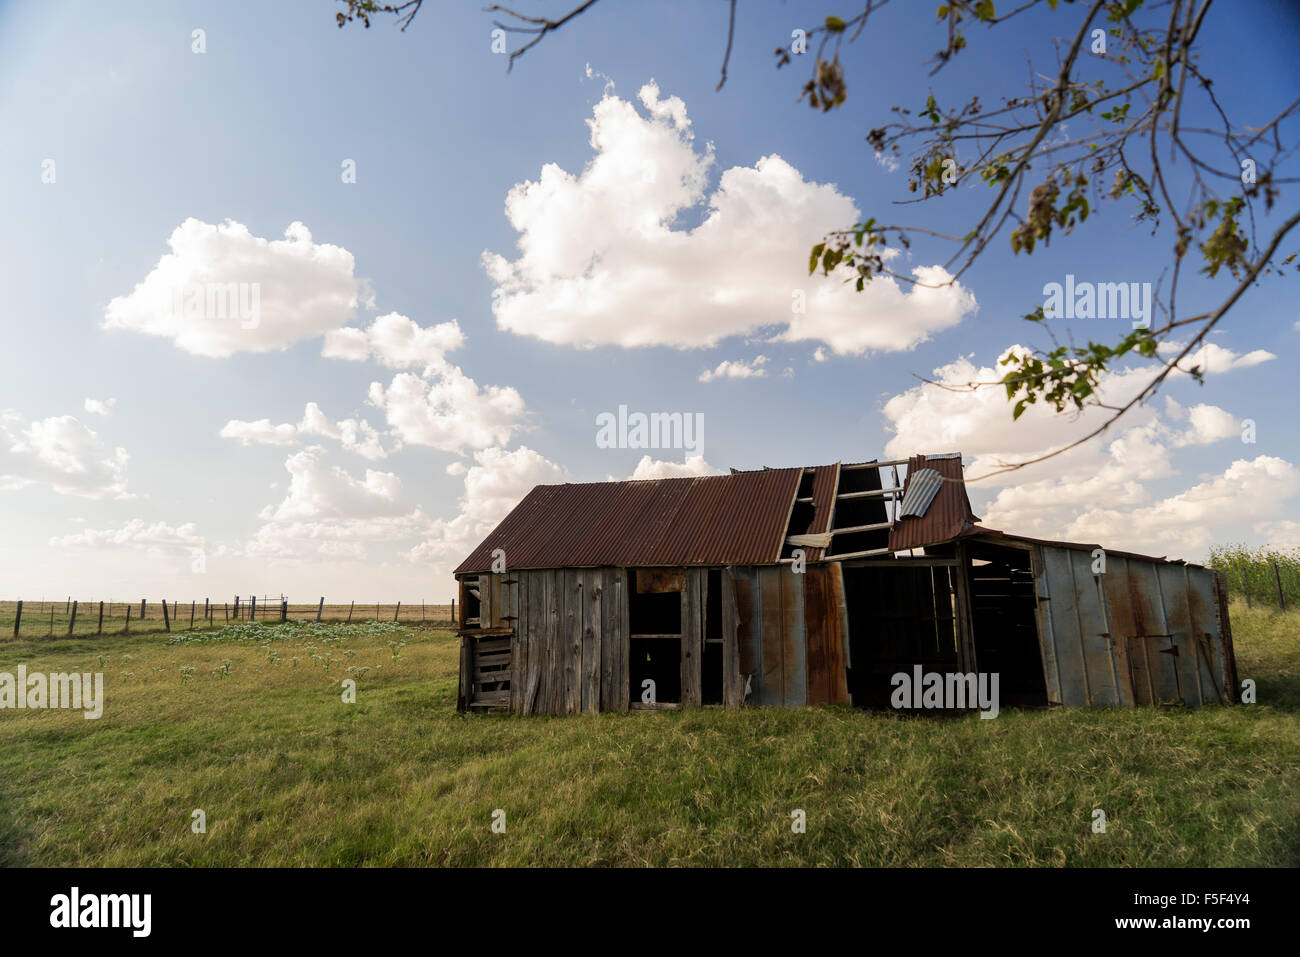 A wooden barn in disrepair - Stock Image